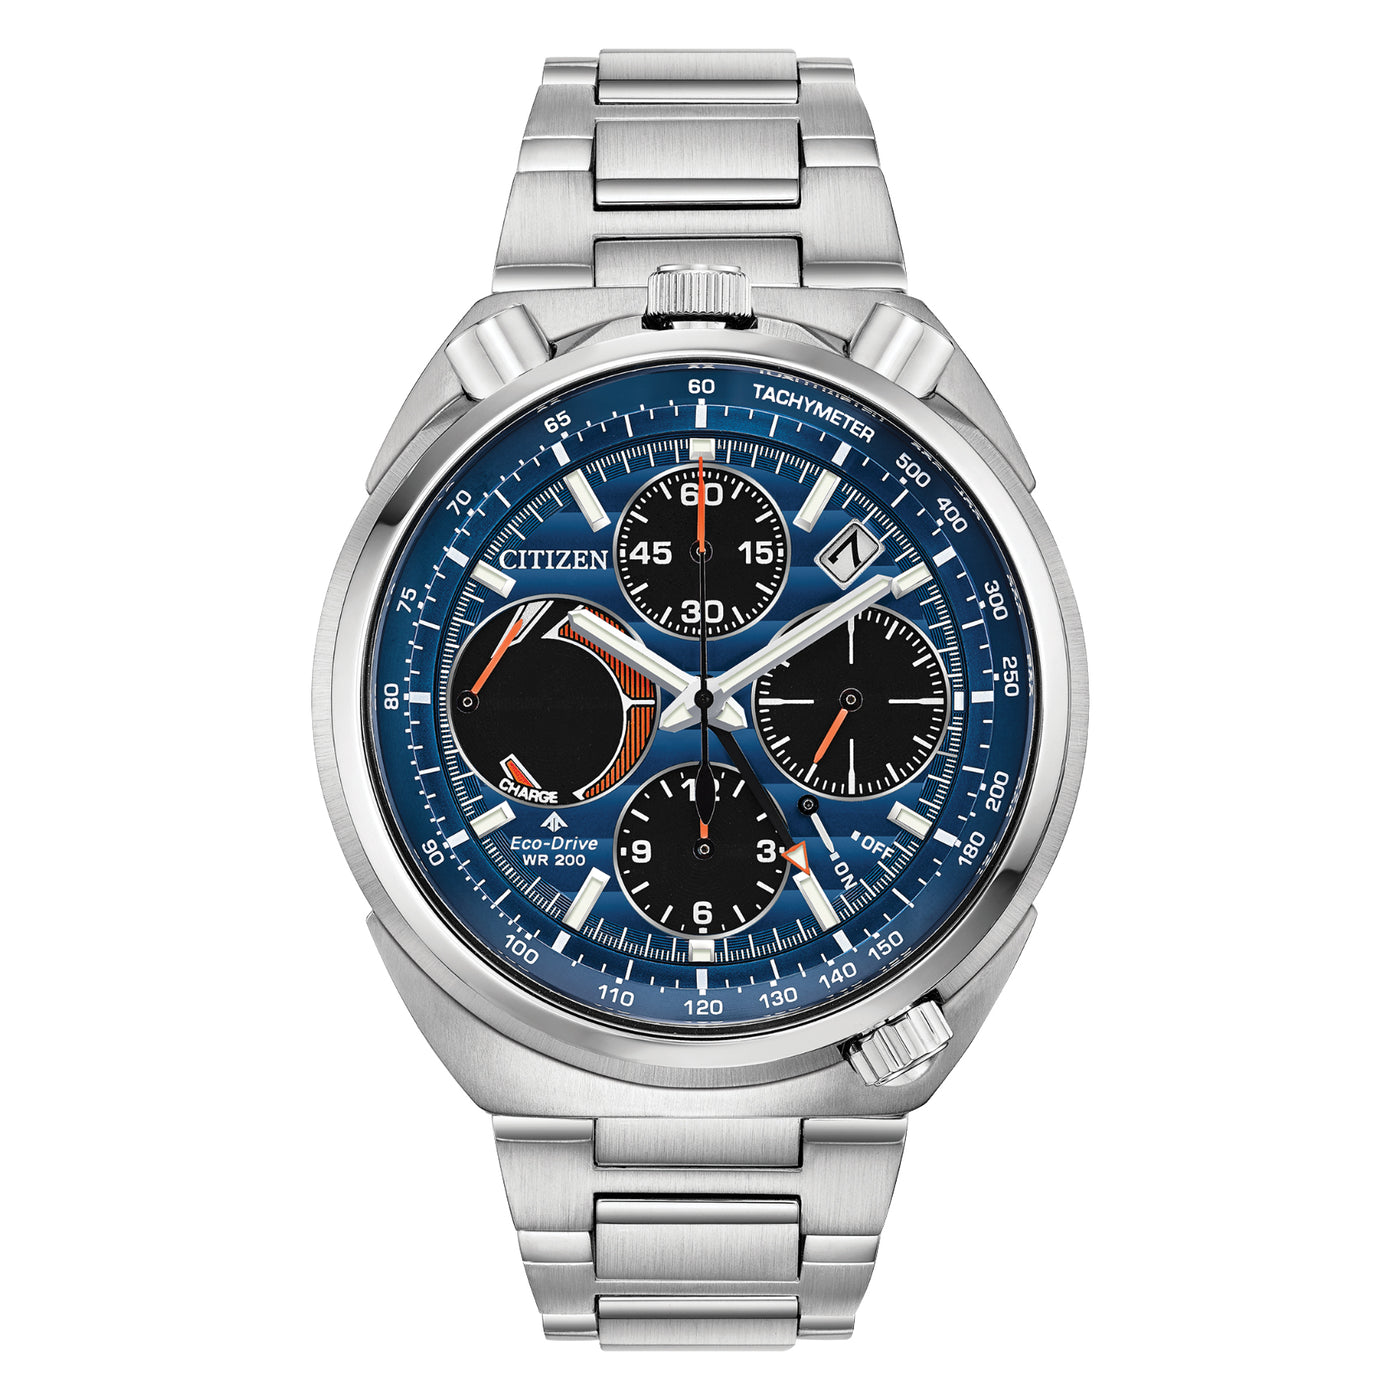 Citizen Eco-Drive Promaster Tsuno Chronograph Racer Collection AV0070-57L